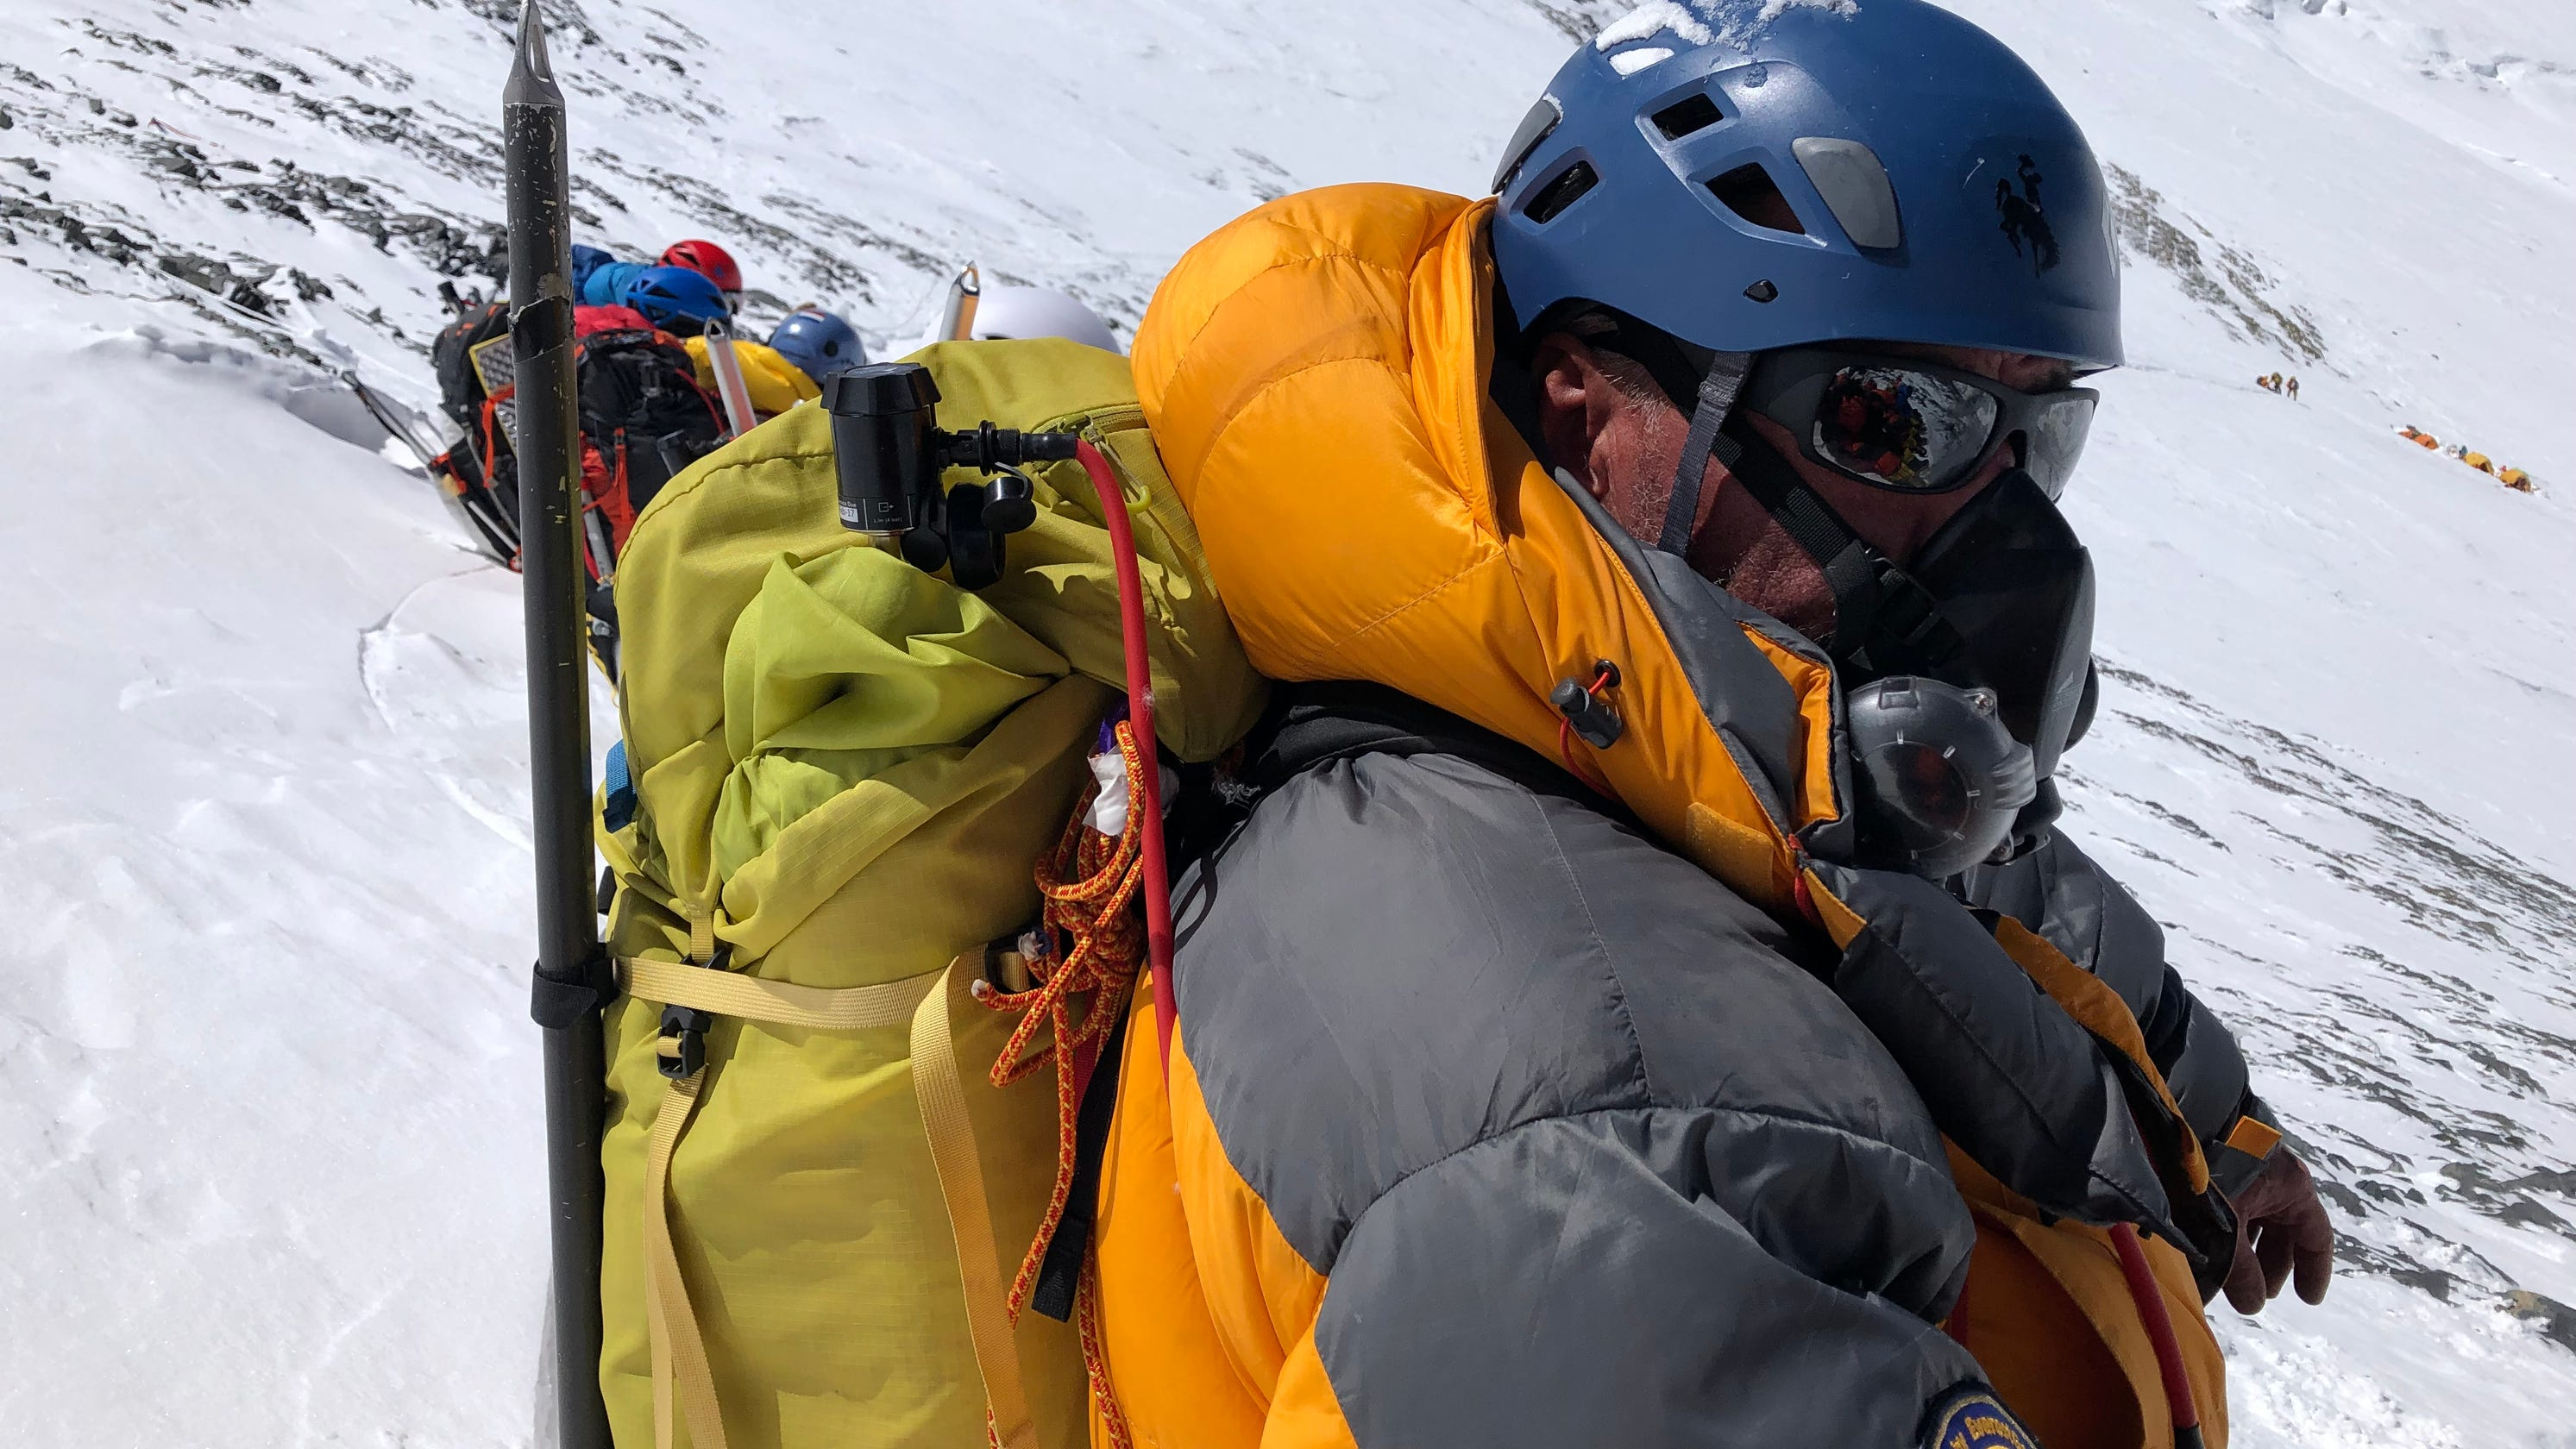 Mount Everest summit was within sight, so why did this Ohio man stop?